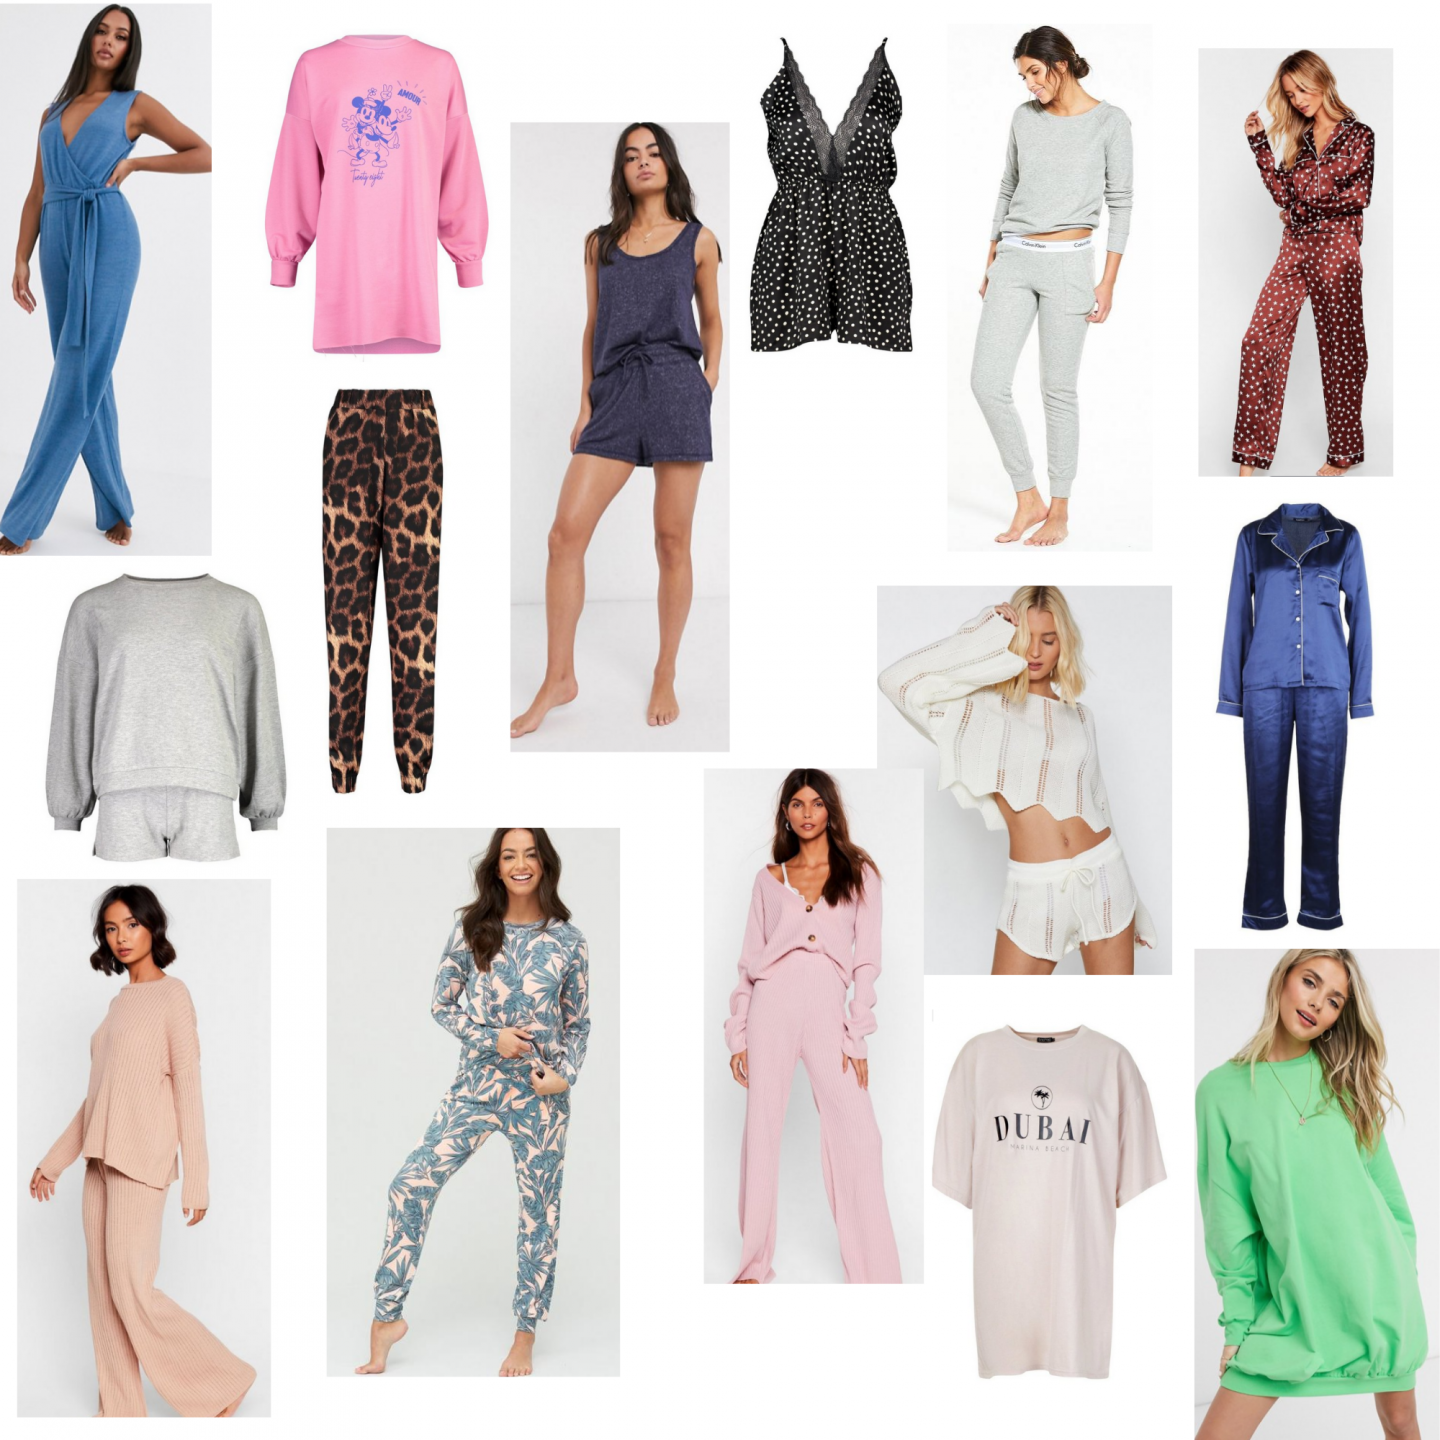 Stay at home loungewear